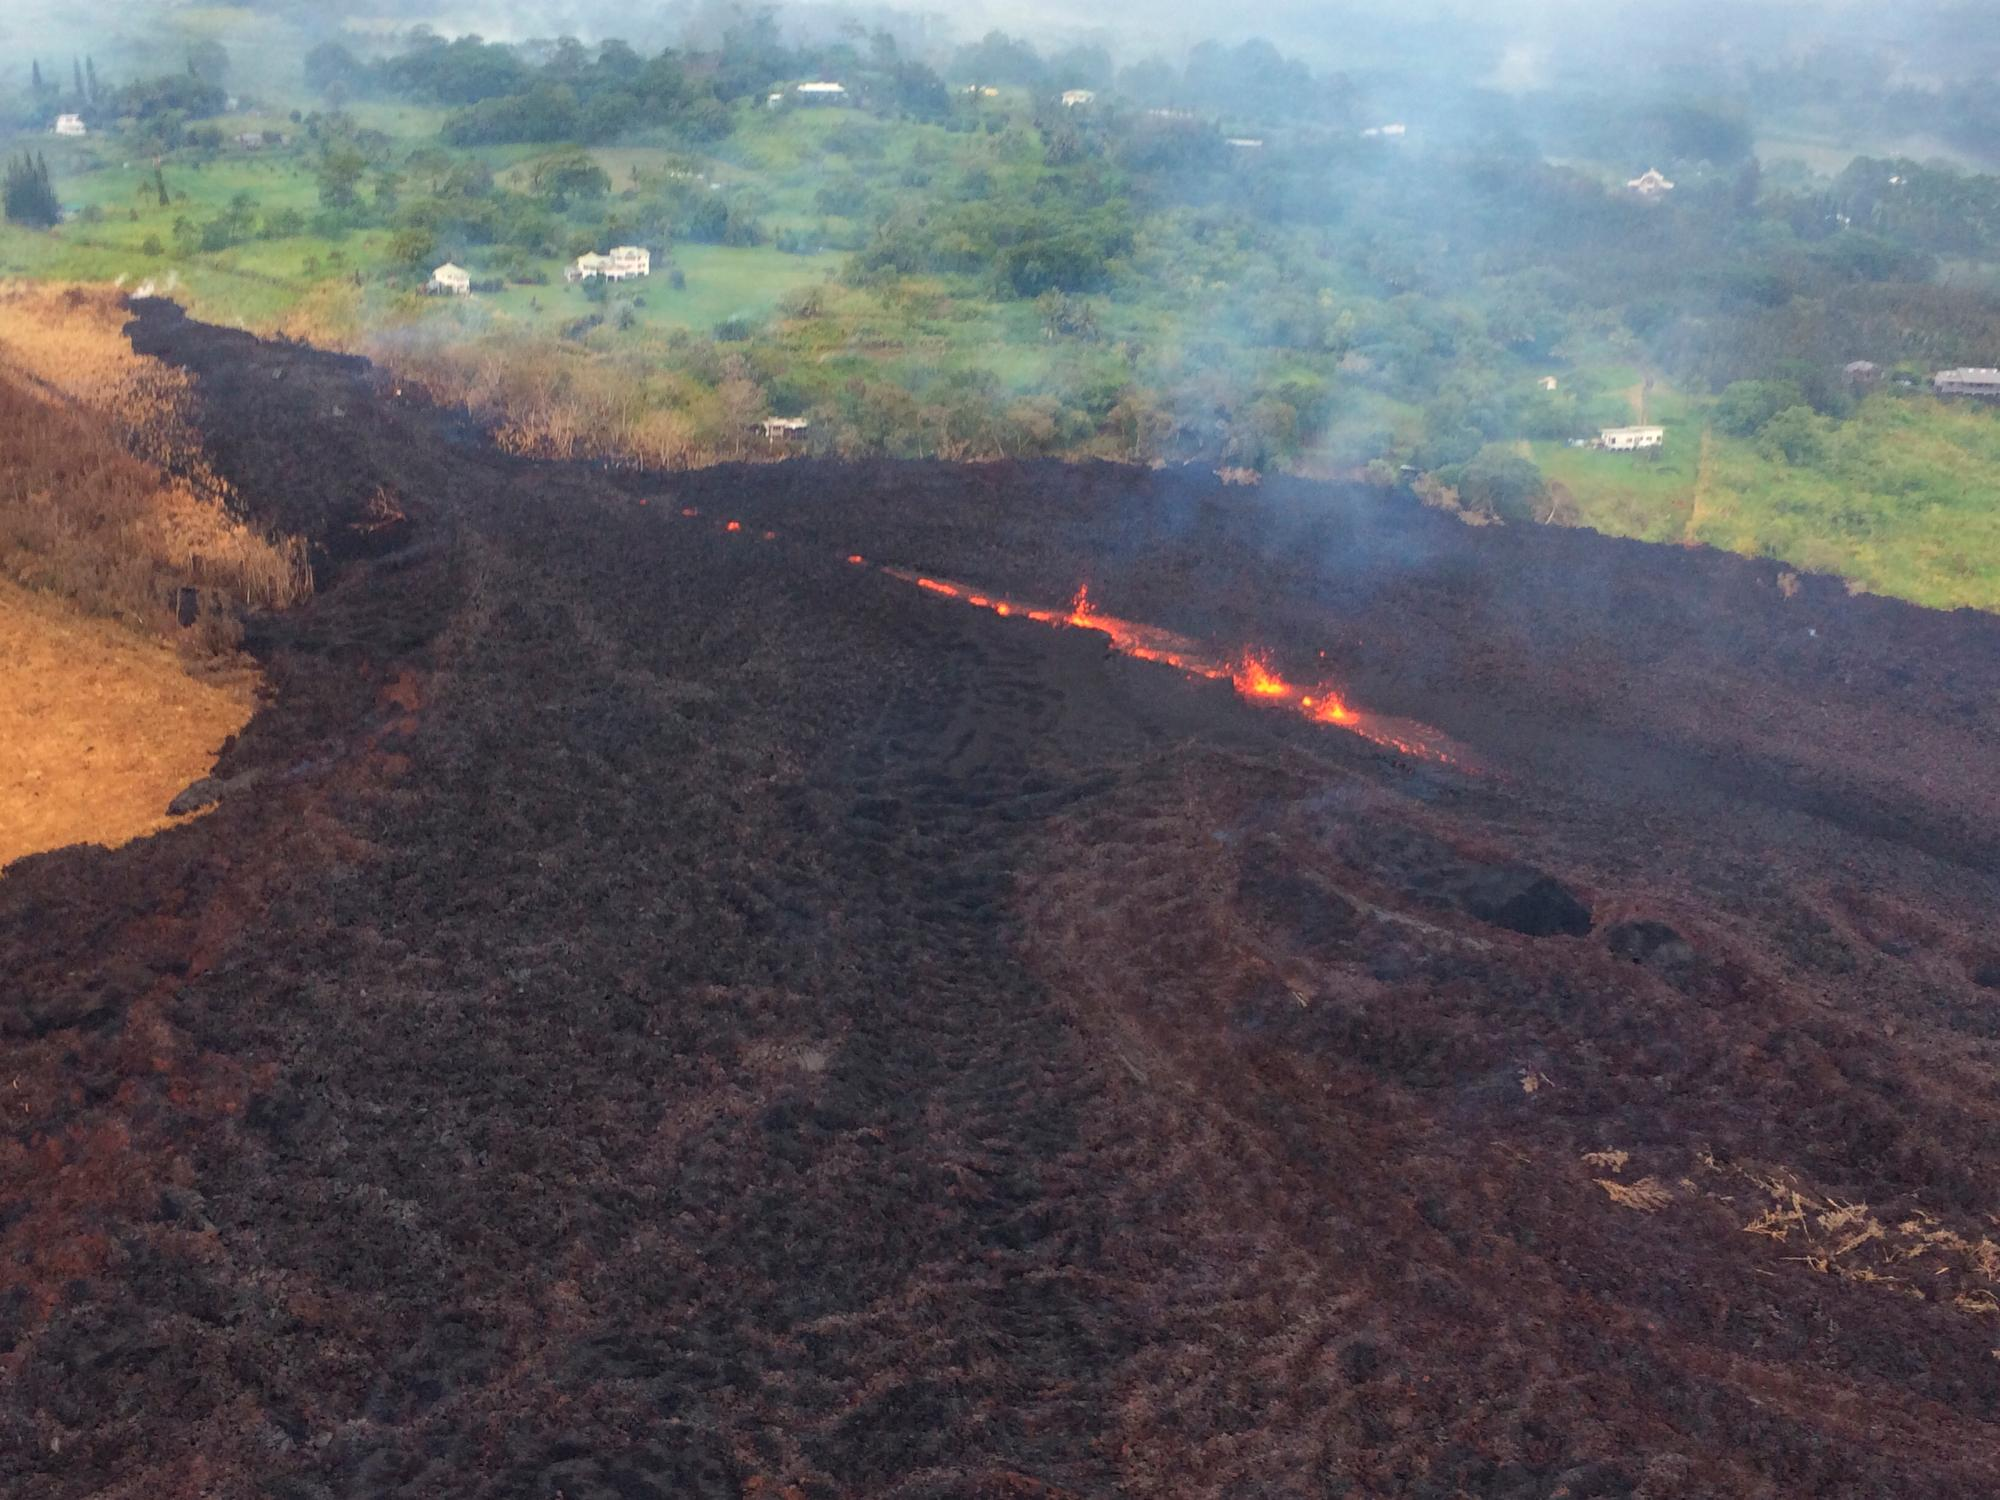 This Thursday, May 17, 2018, aerial image released by the U.S. Geological Survey, shows Fissure 17 at about 07:00 a.m. HST., in Pahoa, Hawaii. The HVO field crew reported that the spattering height and intensity at Fissure 17 seemed to have intensified slightly from yesterday, but the length of active spattering in the fissure is shorter. The overall vigor of Fissure 17 appears to have dropped over the past two days, accompanying a stalling of the Fissure 17 flow front. (U.S. Geological Survey via AP)